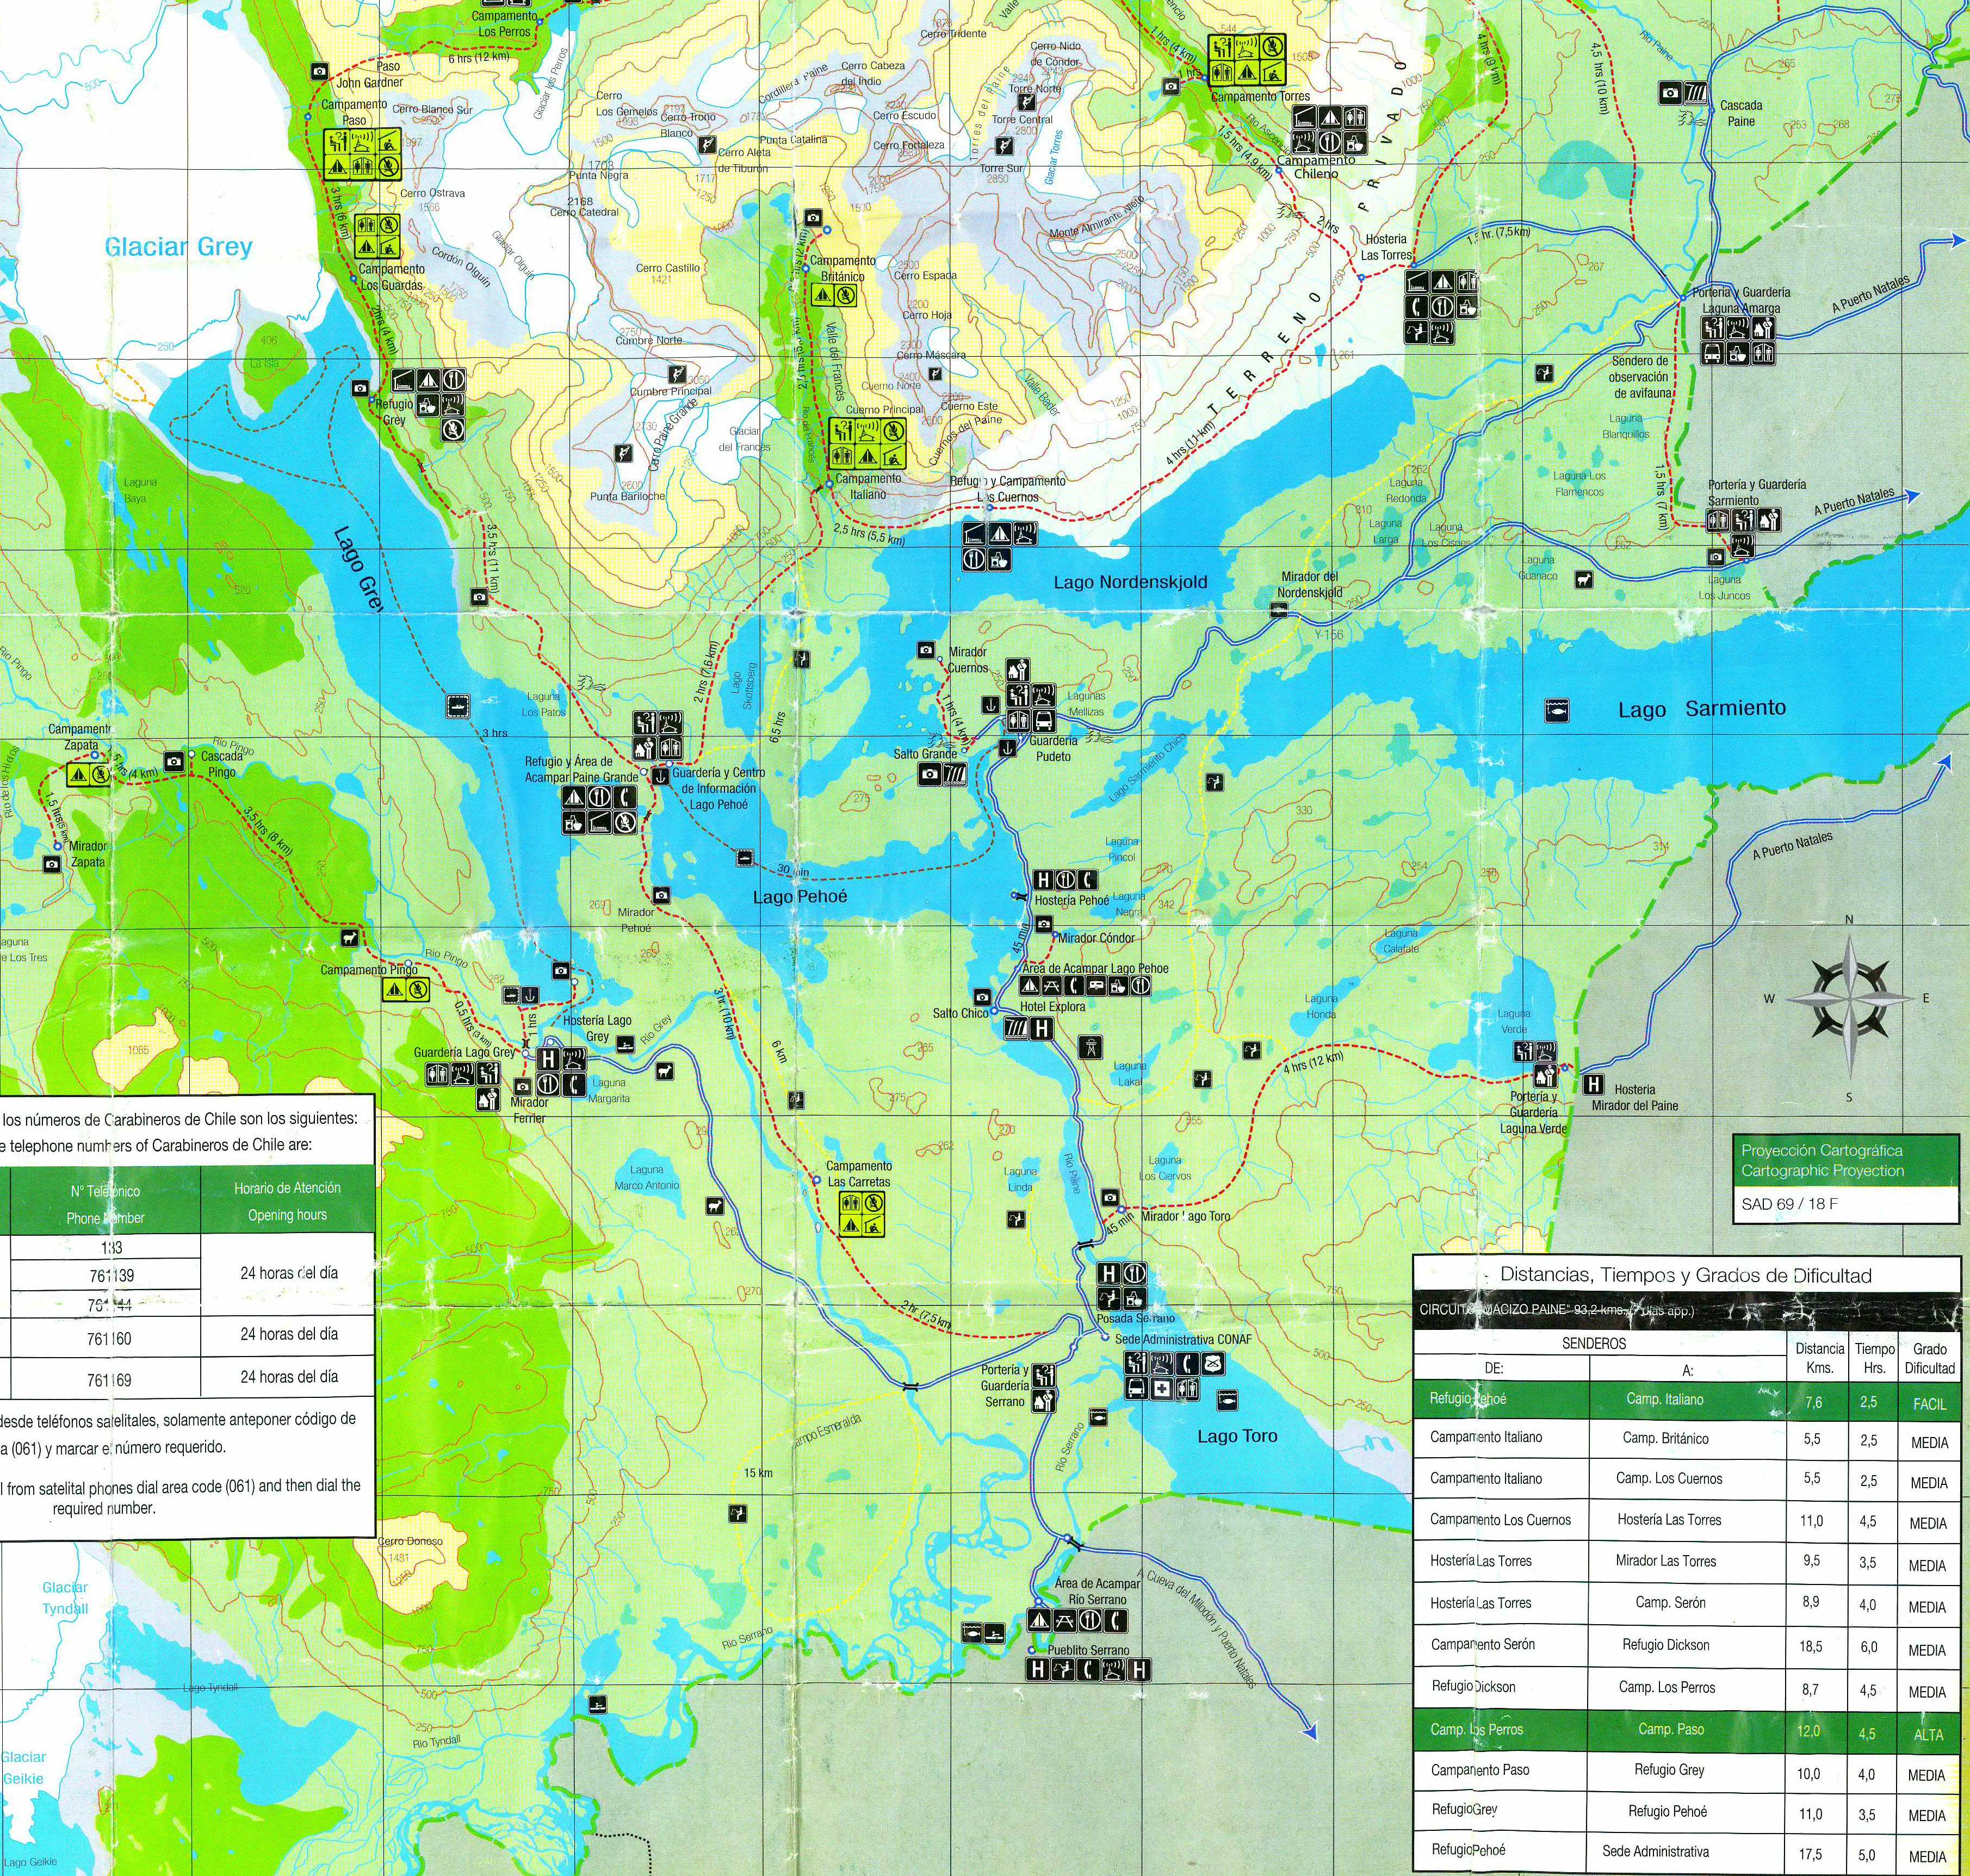 torres del paine map with Karten 2009 on Hotel Las Torres Patagonia in addition Los Glaciares likewise Stock Image Scenic Landscape Patagonia South America Image26245271 also Destinations W Trek Torres Del Paine National Park 2 further Mountains trees horse national park Torres del Paine National Park Chile Patagonia autumn.